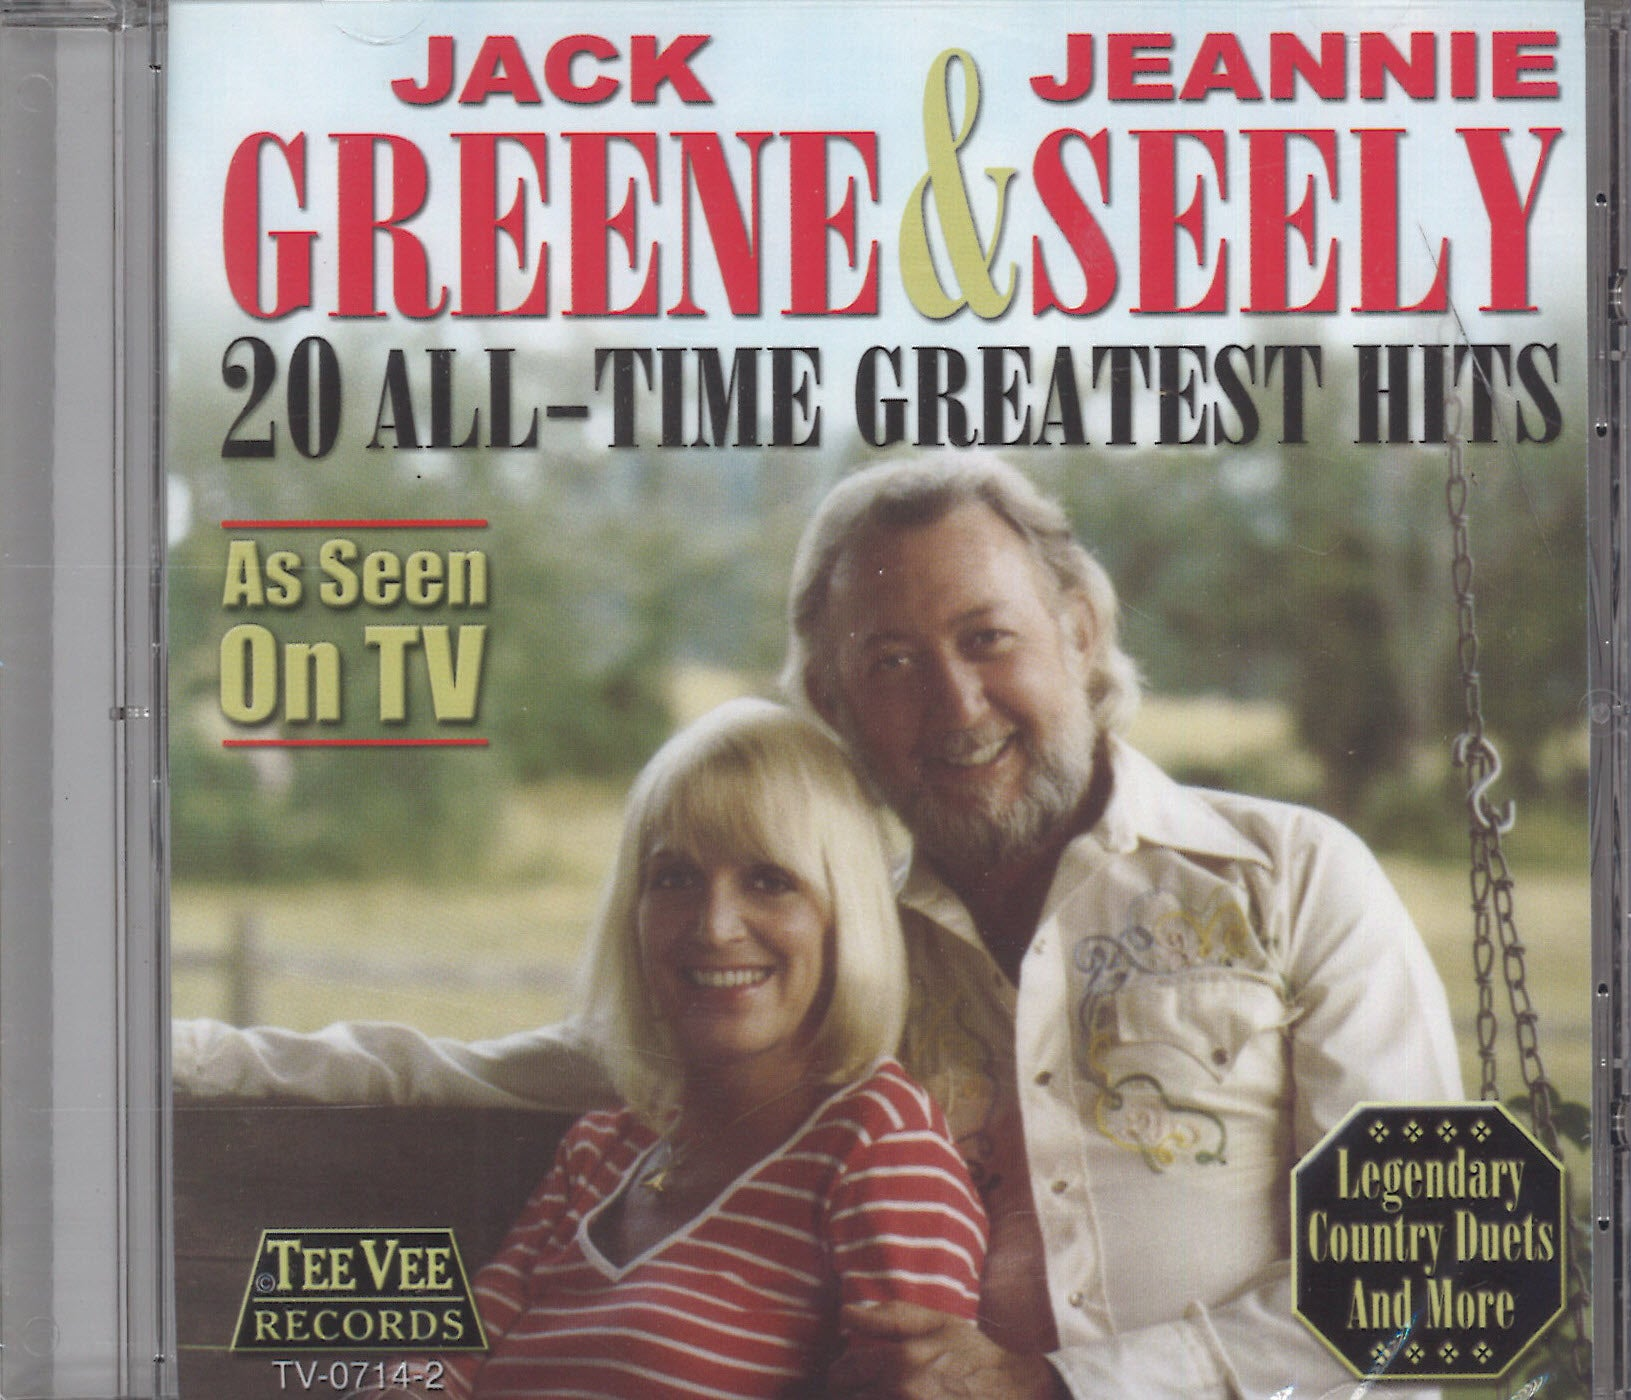 Jack Greene & Jeannie Seely 20 All-Time Greatest Hits